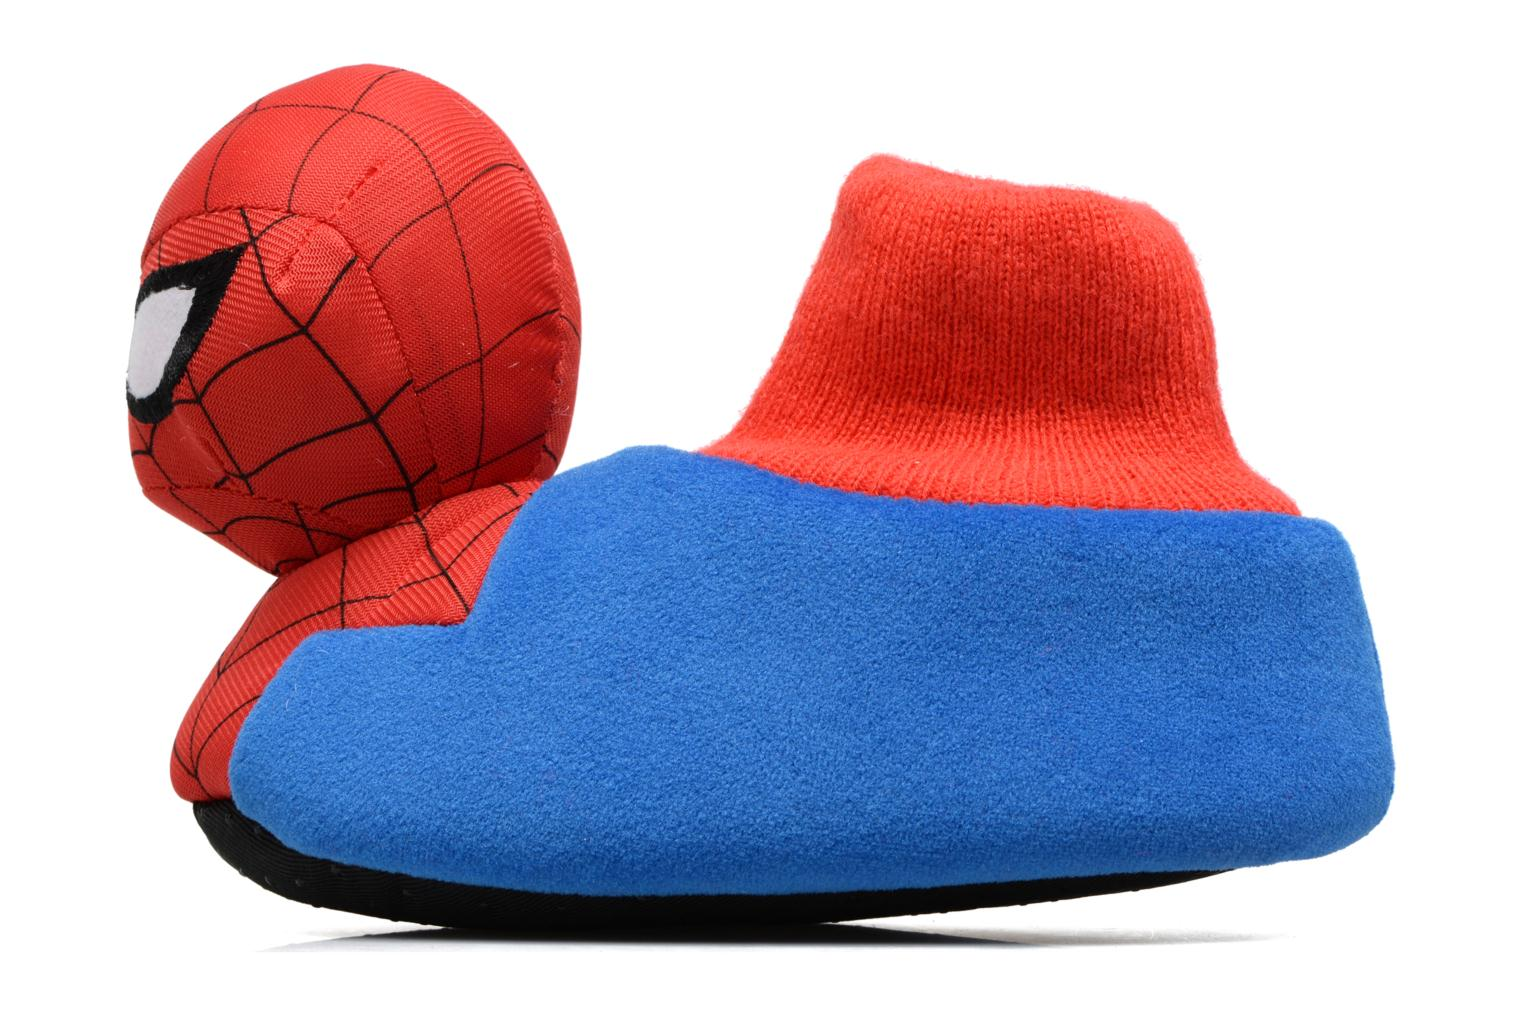 Pantoffels Spiderman S24967 Spiderman Blauw voorkant